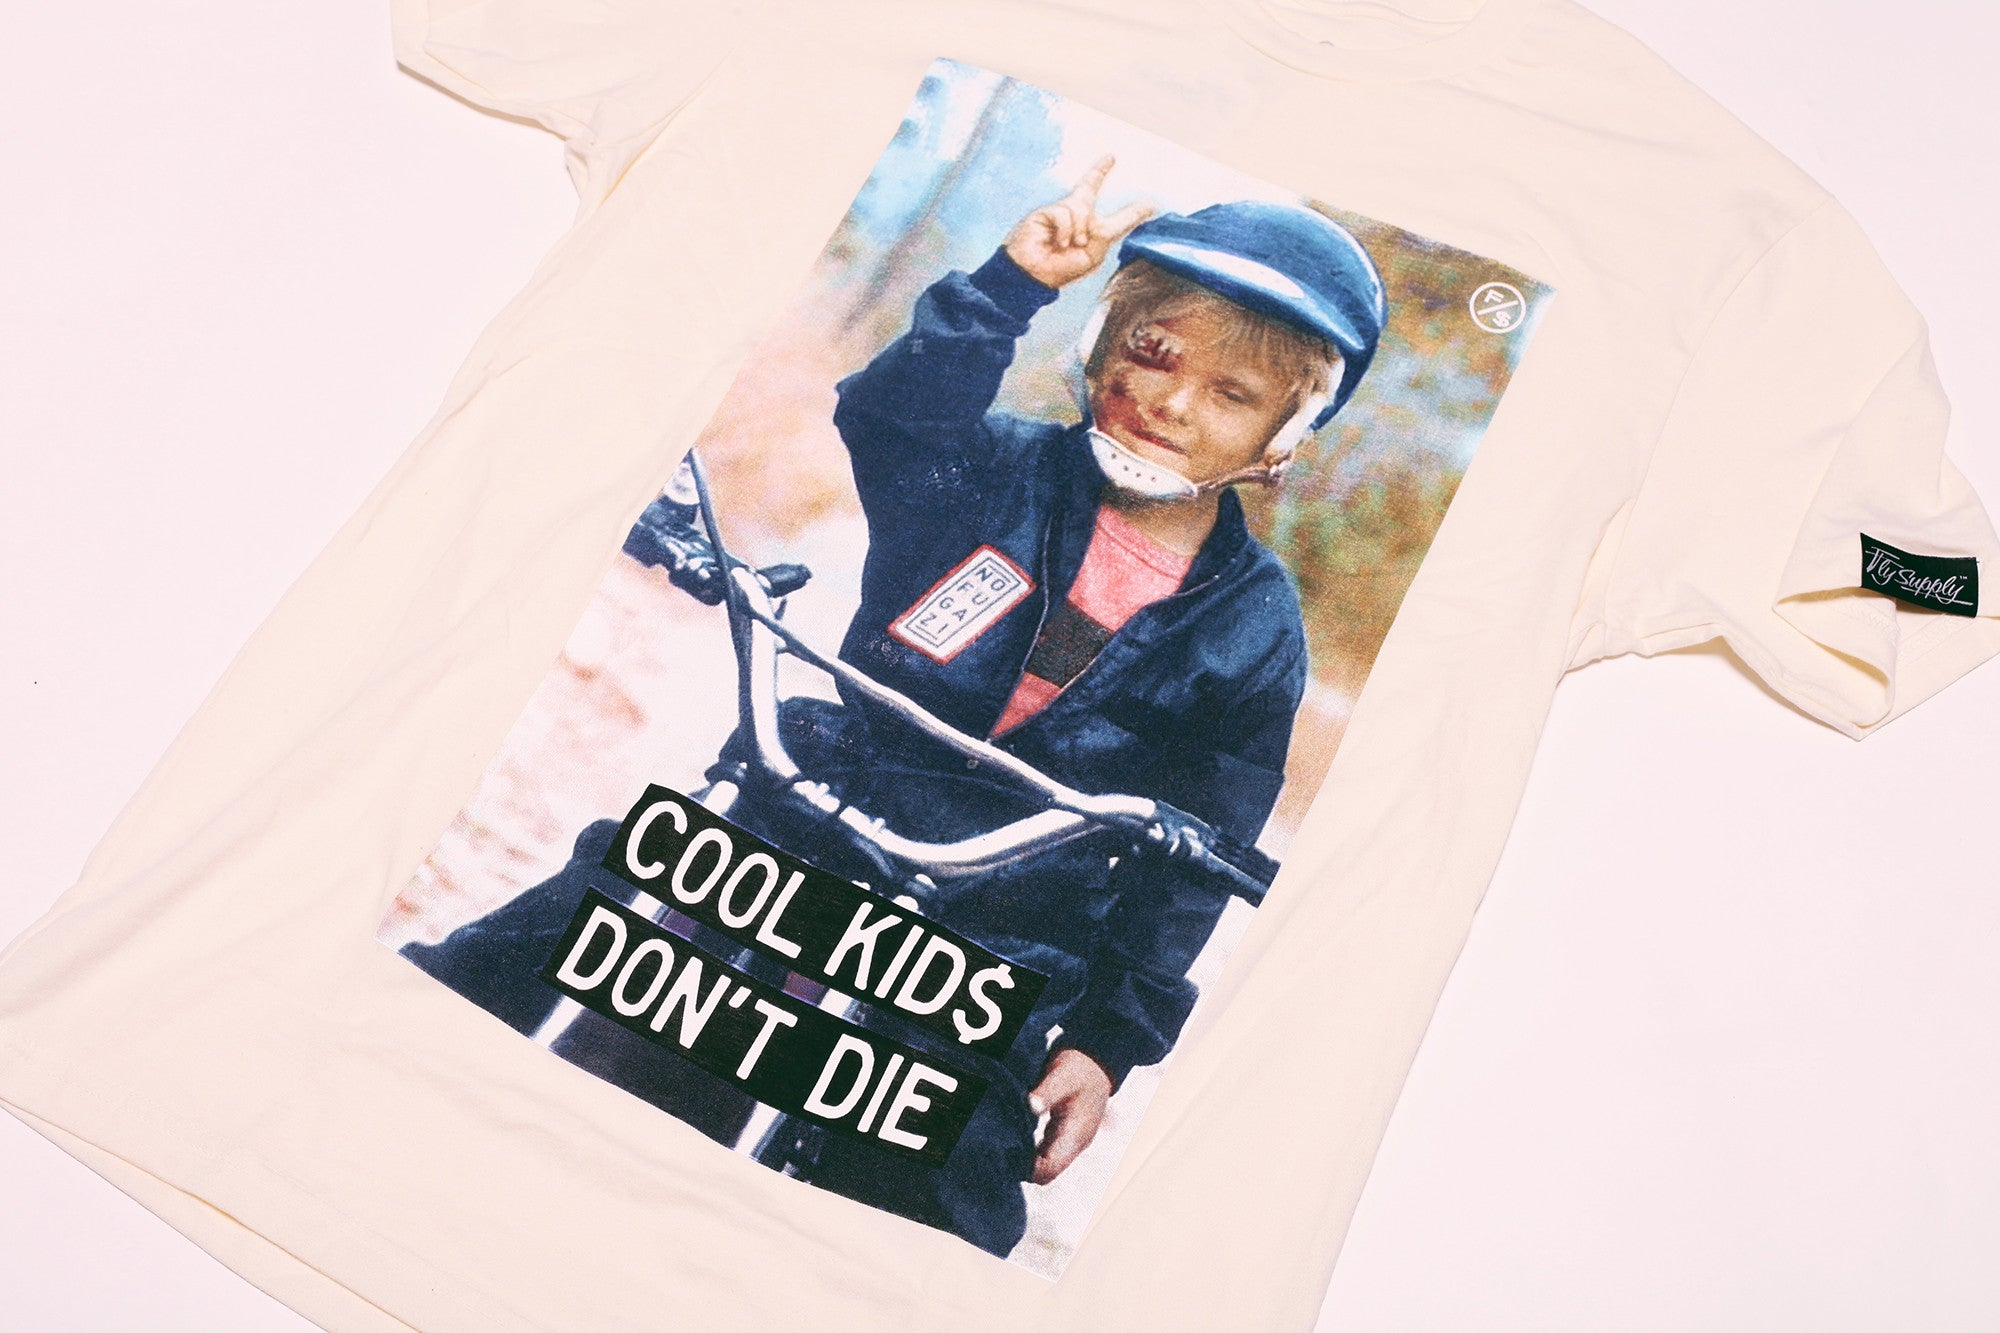 155429ddc46 Cool Kids Don t Die – Fly Supply Co